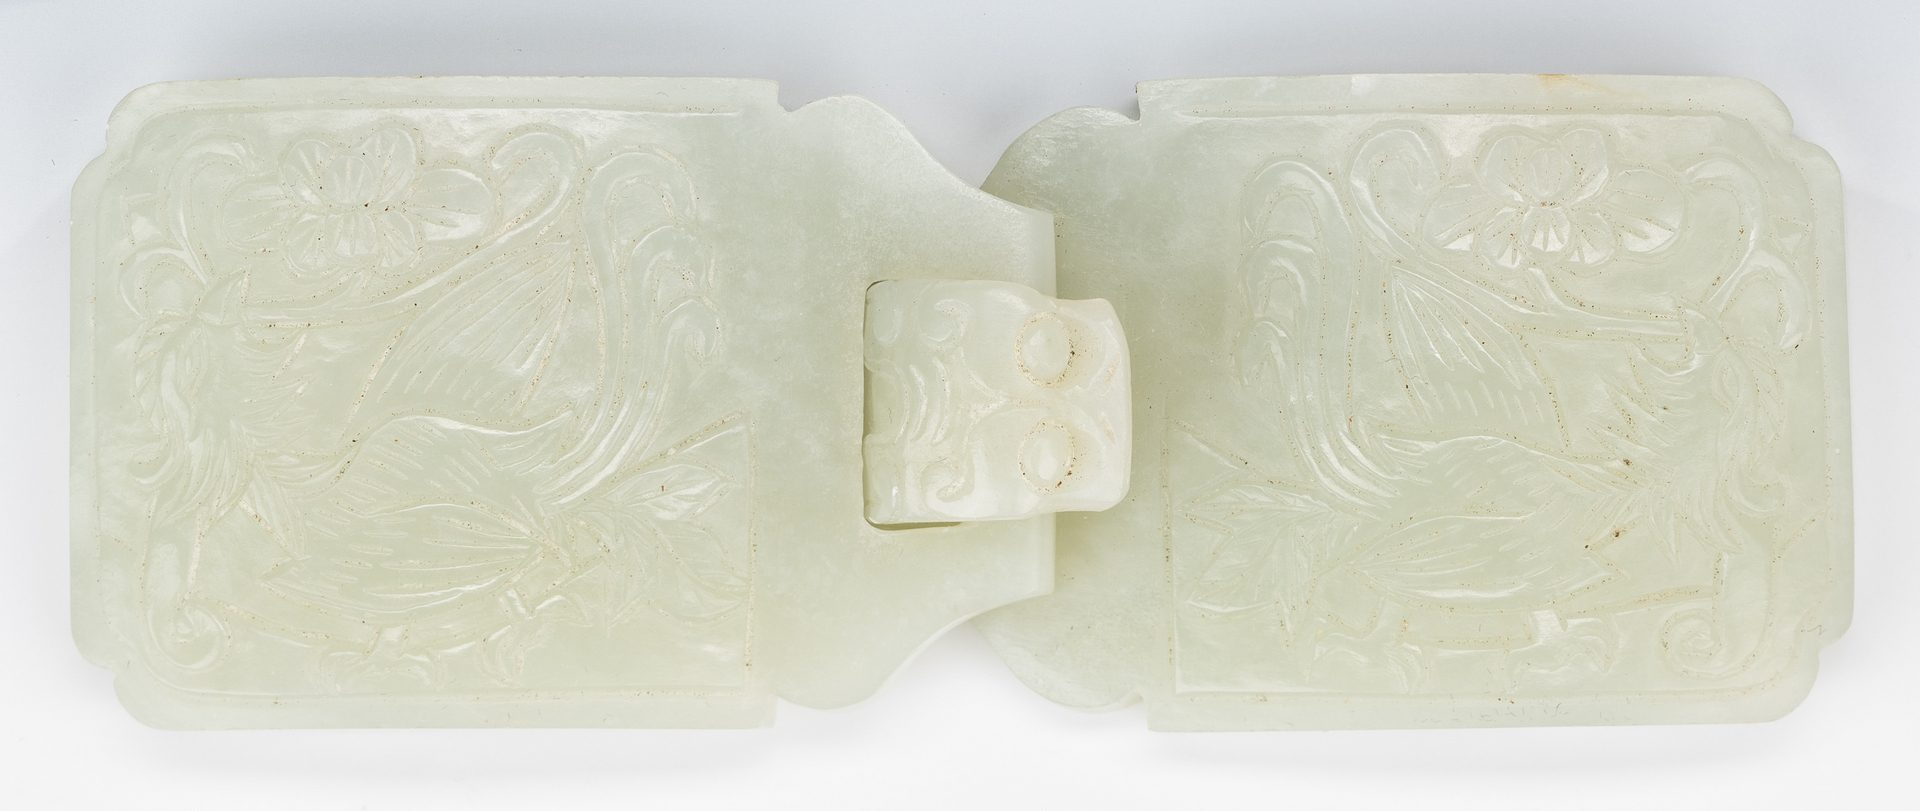 Lot 17: Chinese Carved Jade Double Belt Buckle